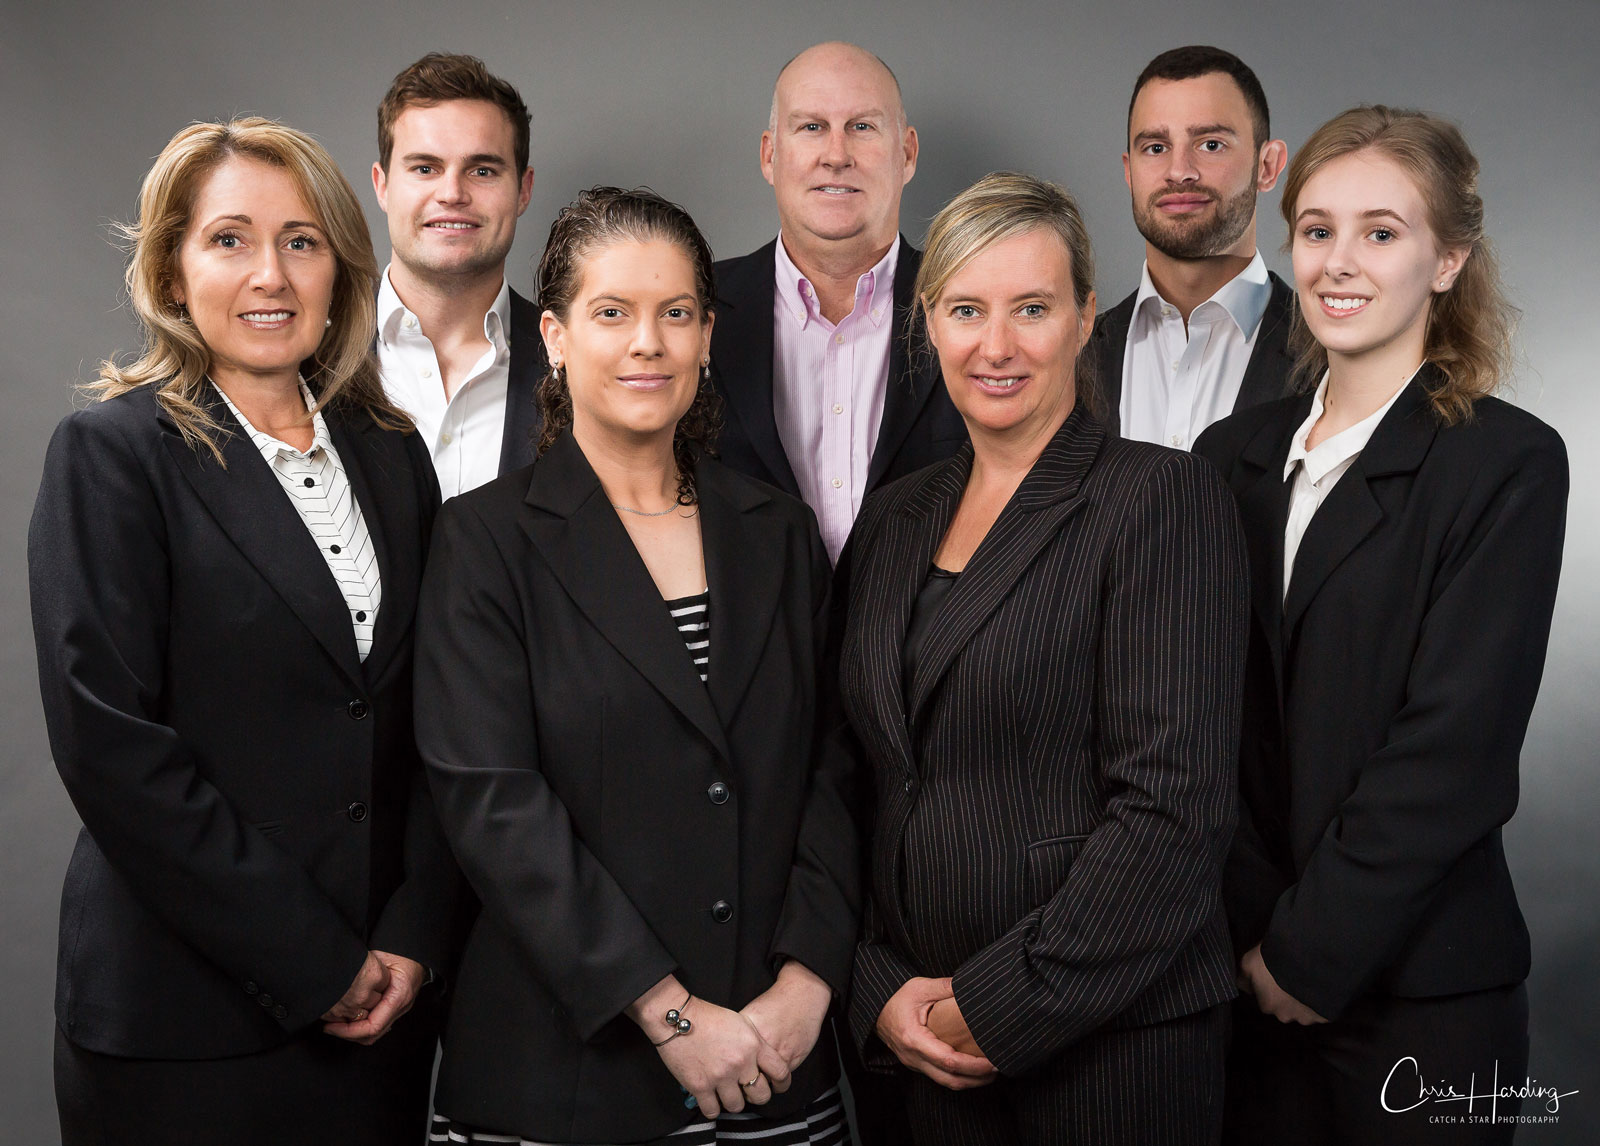 Corporate portrait group photo